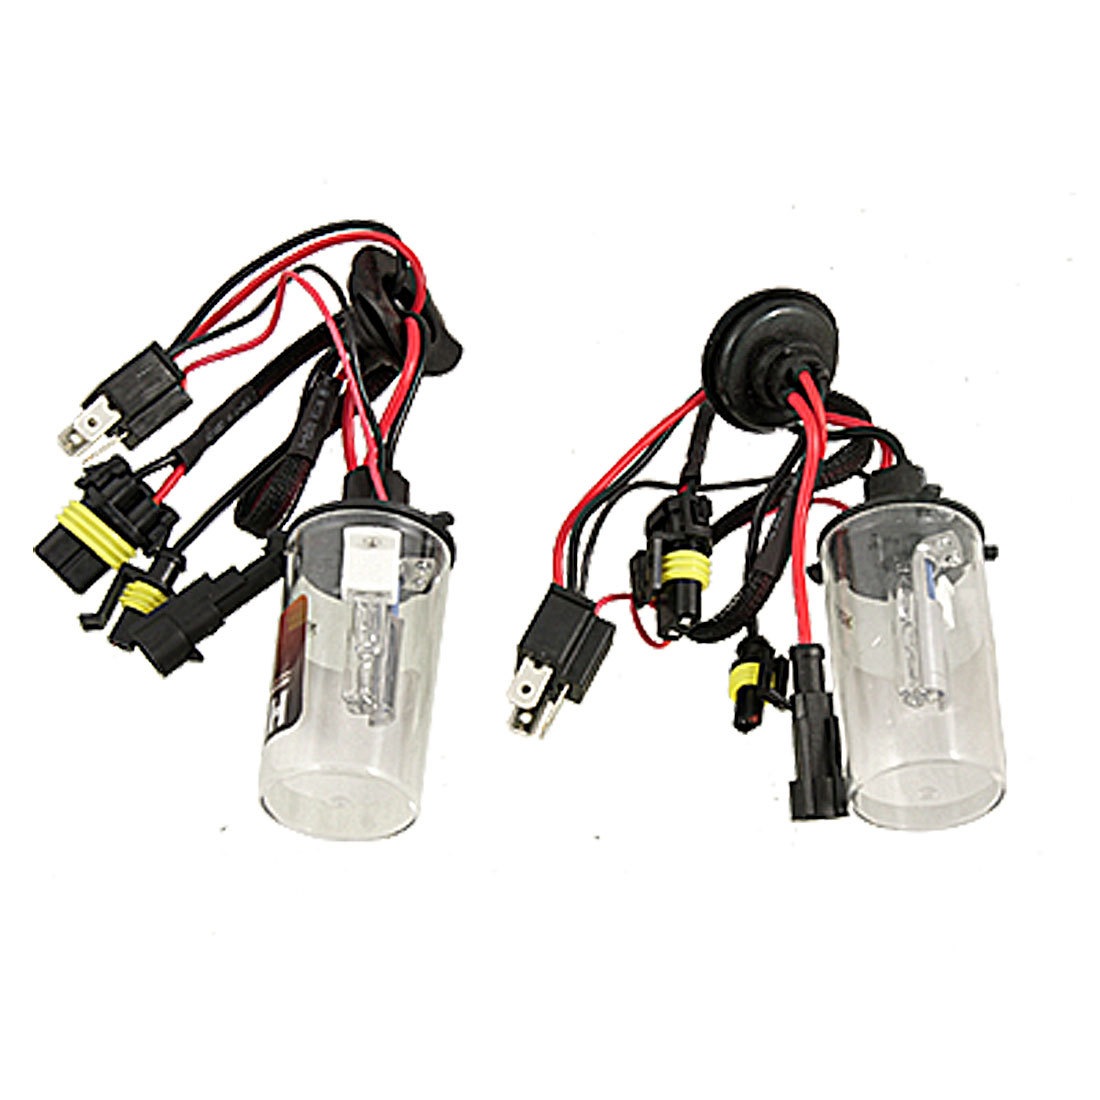 8000K 35W H4 HID Xenon Light Bulb Headlight Conversion Kit